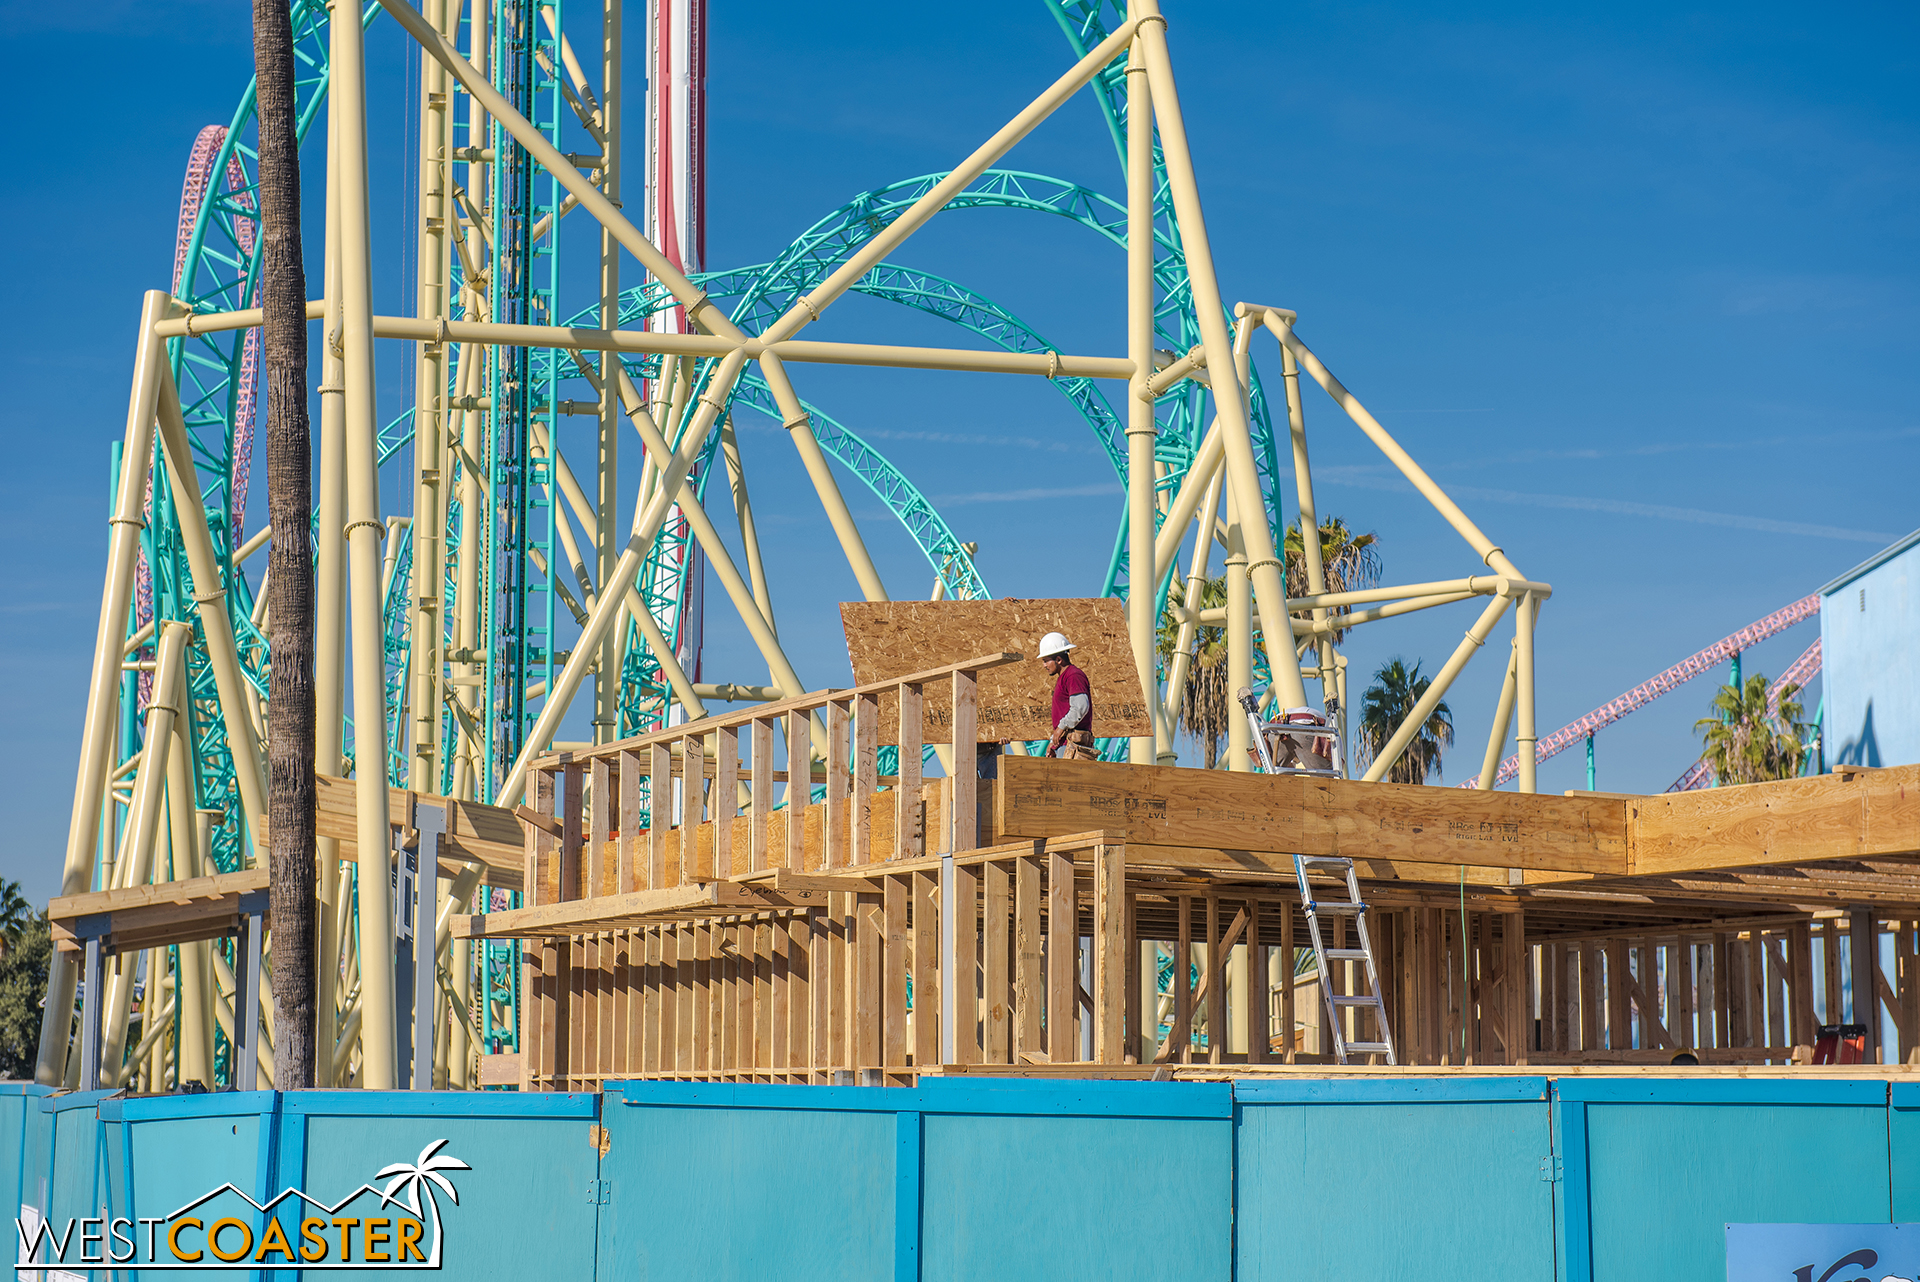 Yup, a wood erection has popped up at the HangTime construction site.